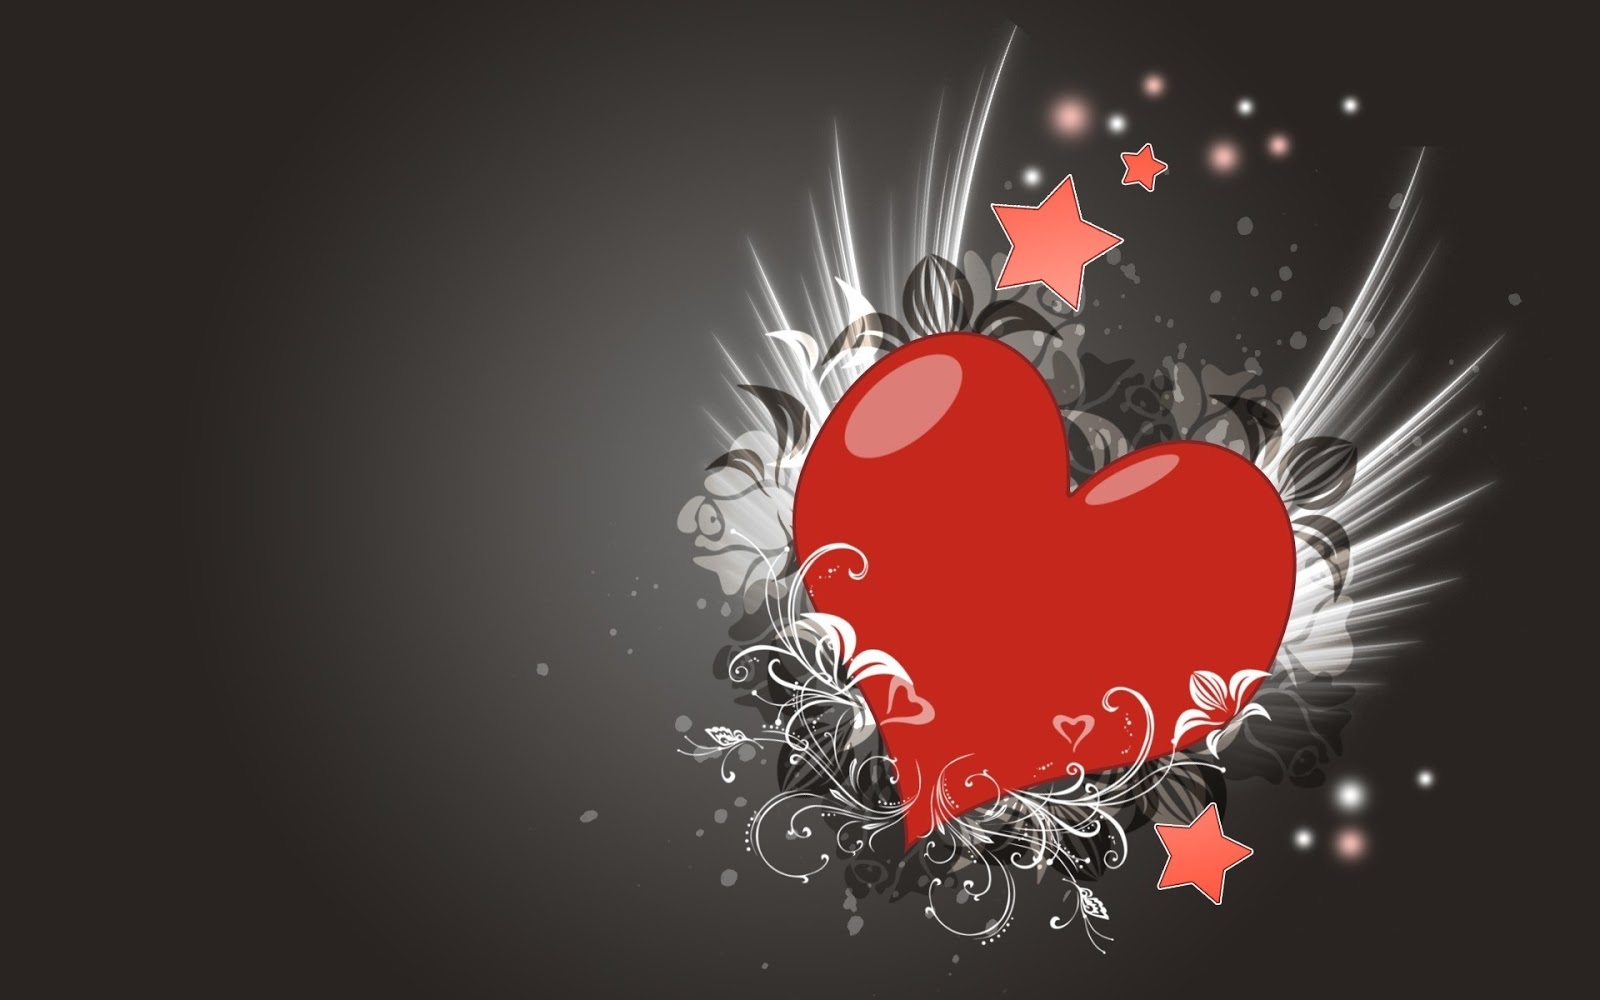 Hd Wallpapers Hdwallpapers Org In Love Heart Nice Photos